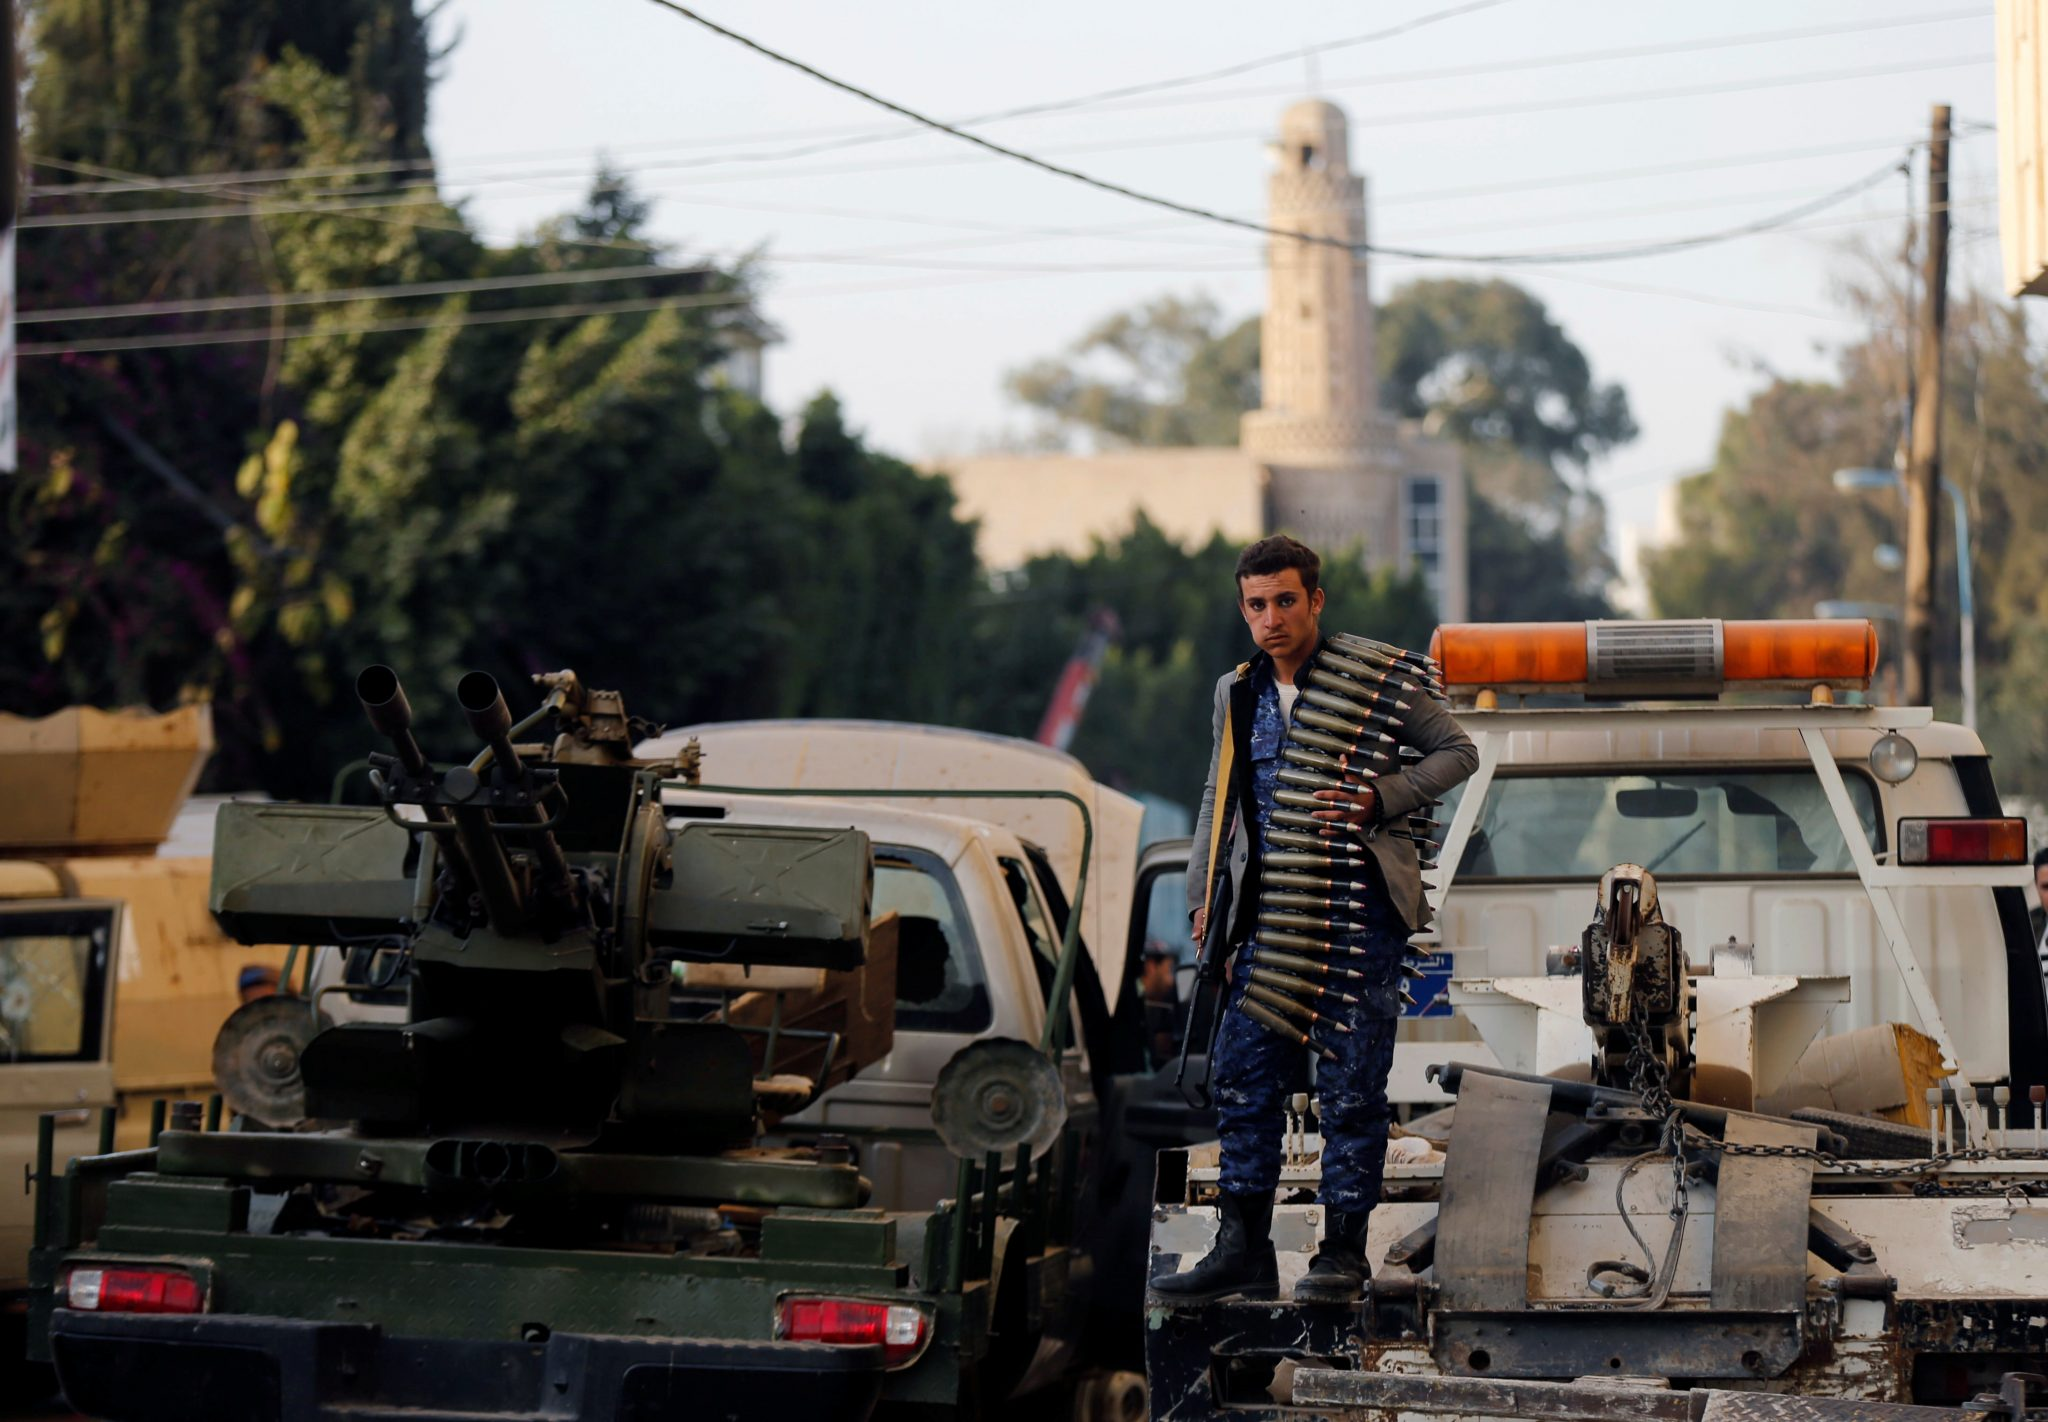 Houthis kill Saleh in Sanaa, Yemen: A Houthi fighter stands on a truck outside the house of Yemen's former president Ali Abdullah Saleh after Saleh was killed, in Sanaa | REUTERS